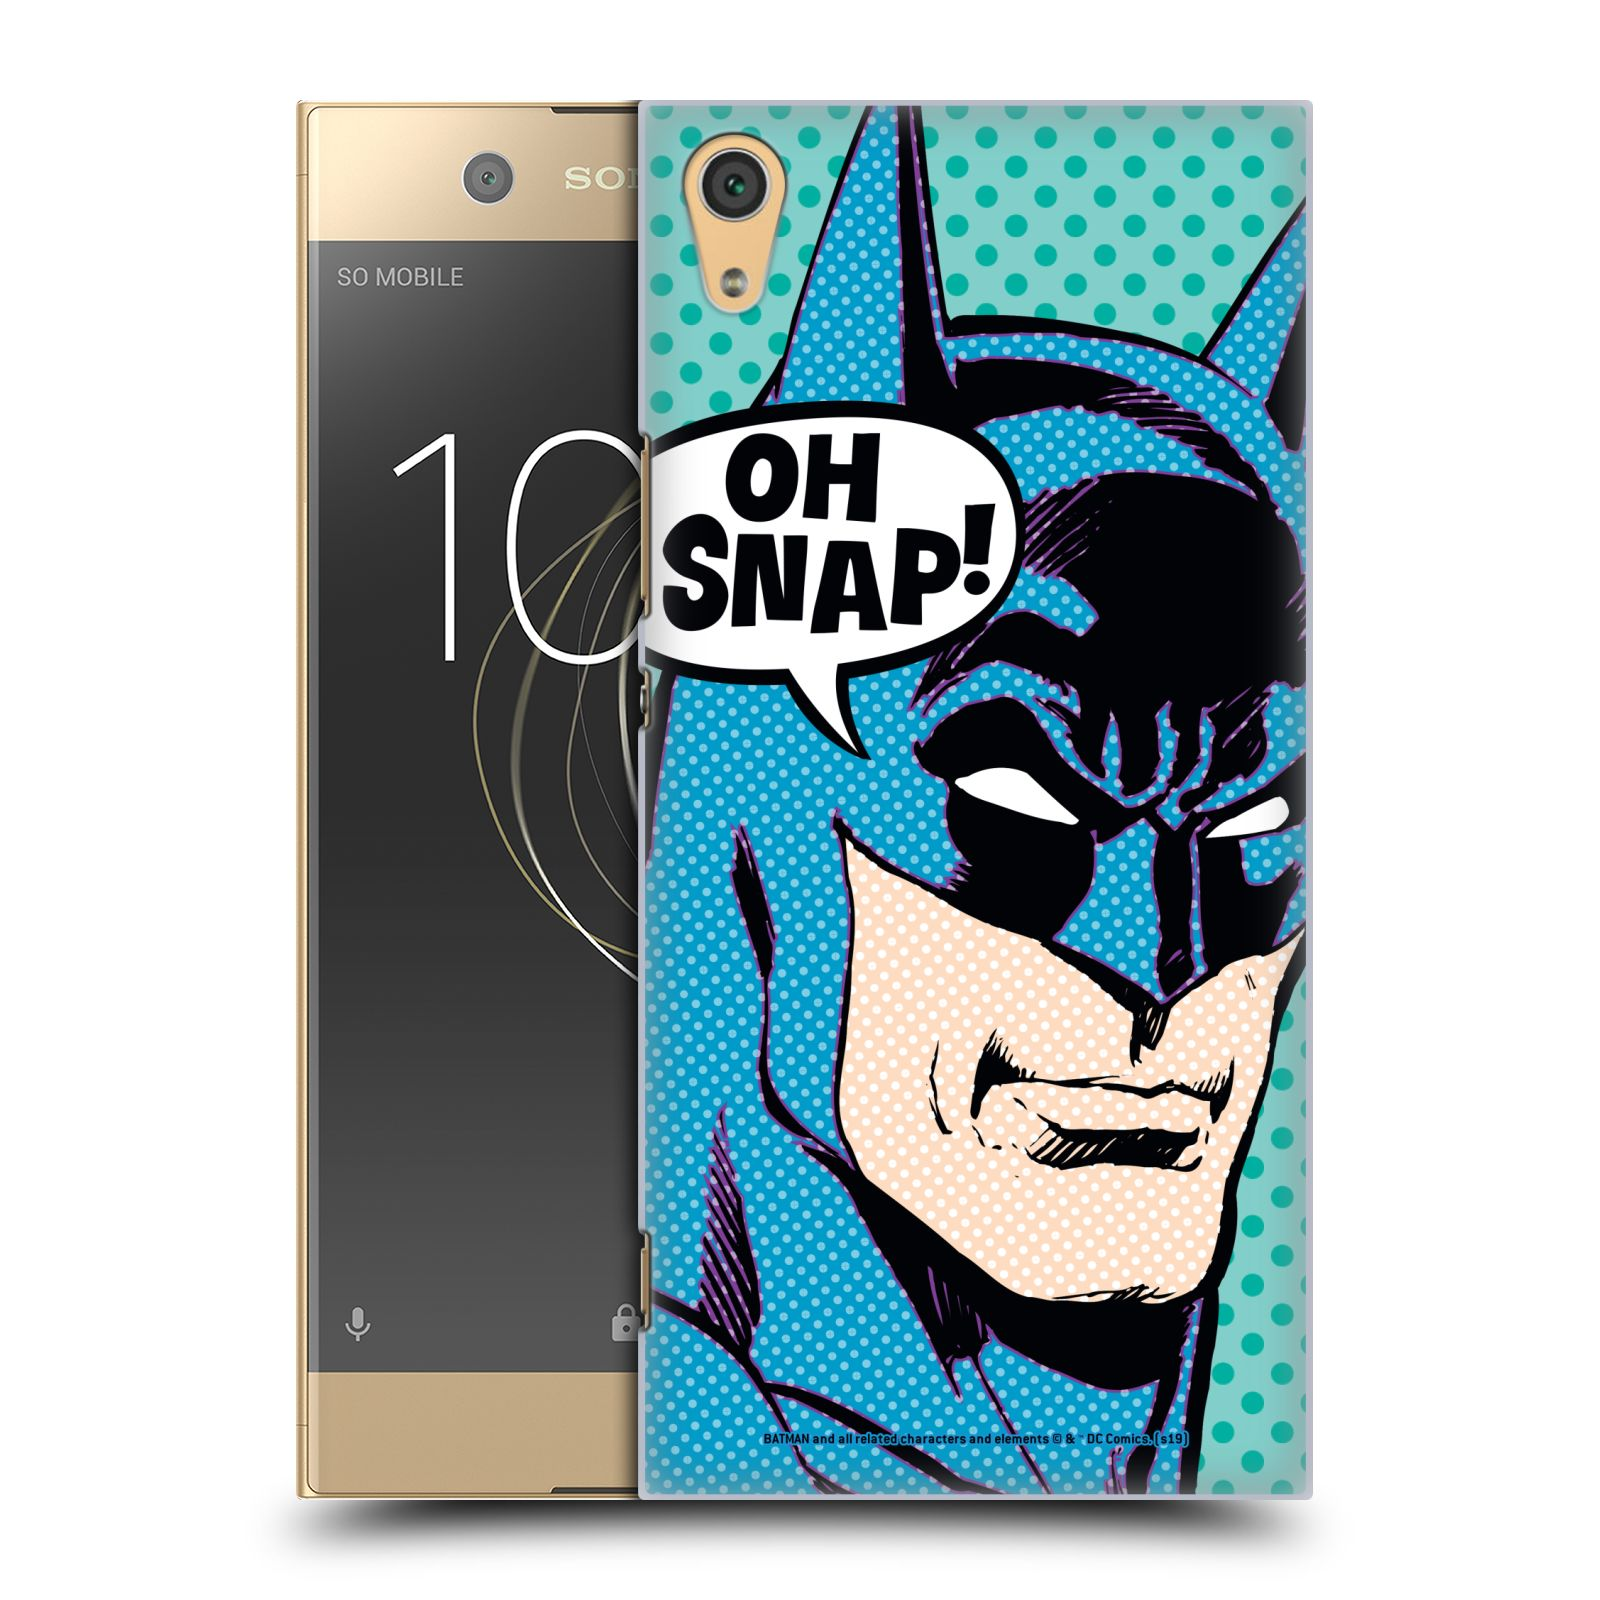 Pouzdro na mobil Sony Xperia XA1 ULTRA - HEAD CASE - DC komix Batman Pop Art tvář